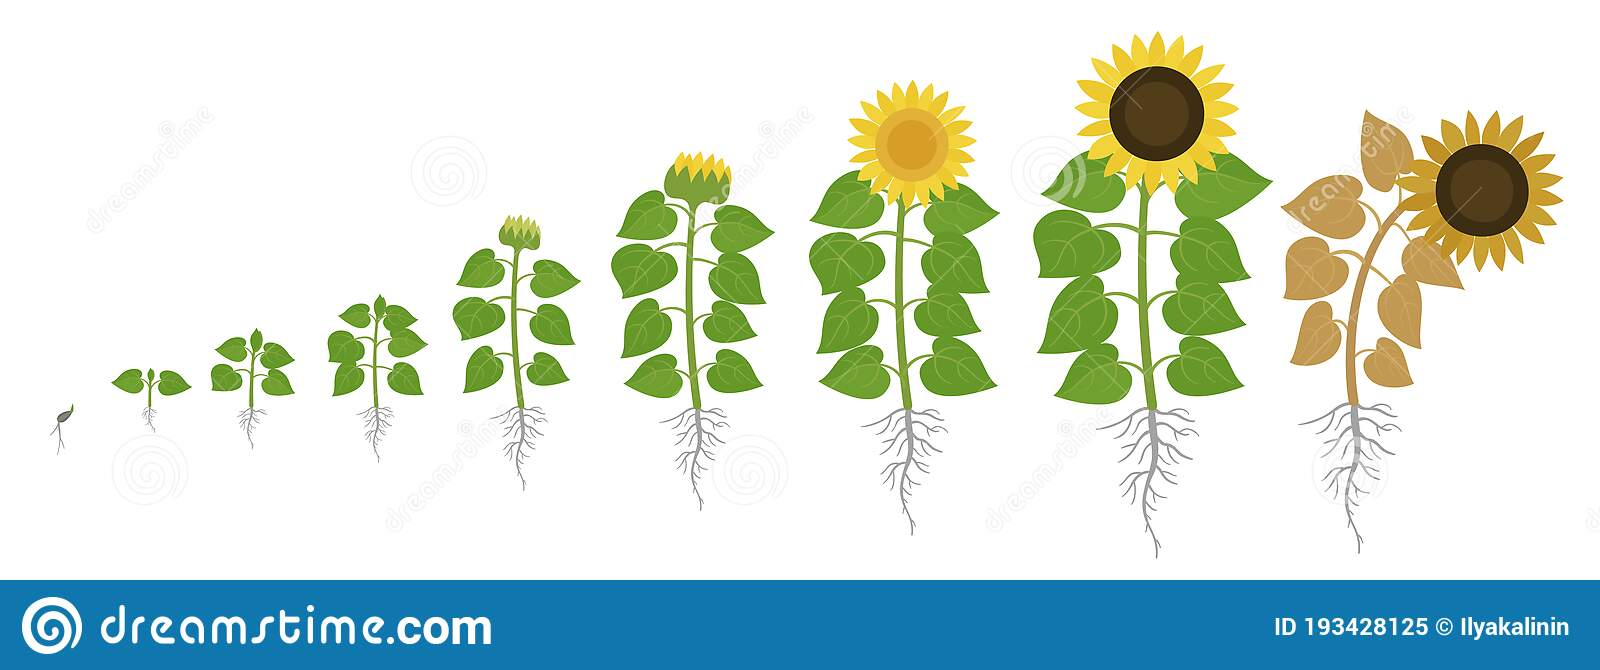 Sunflower Growth Stages. Agriculture Plant Development ...